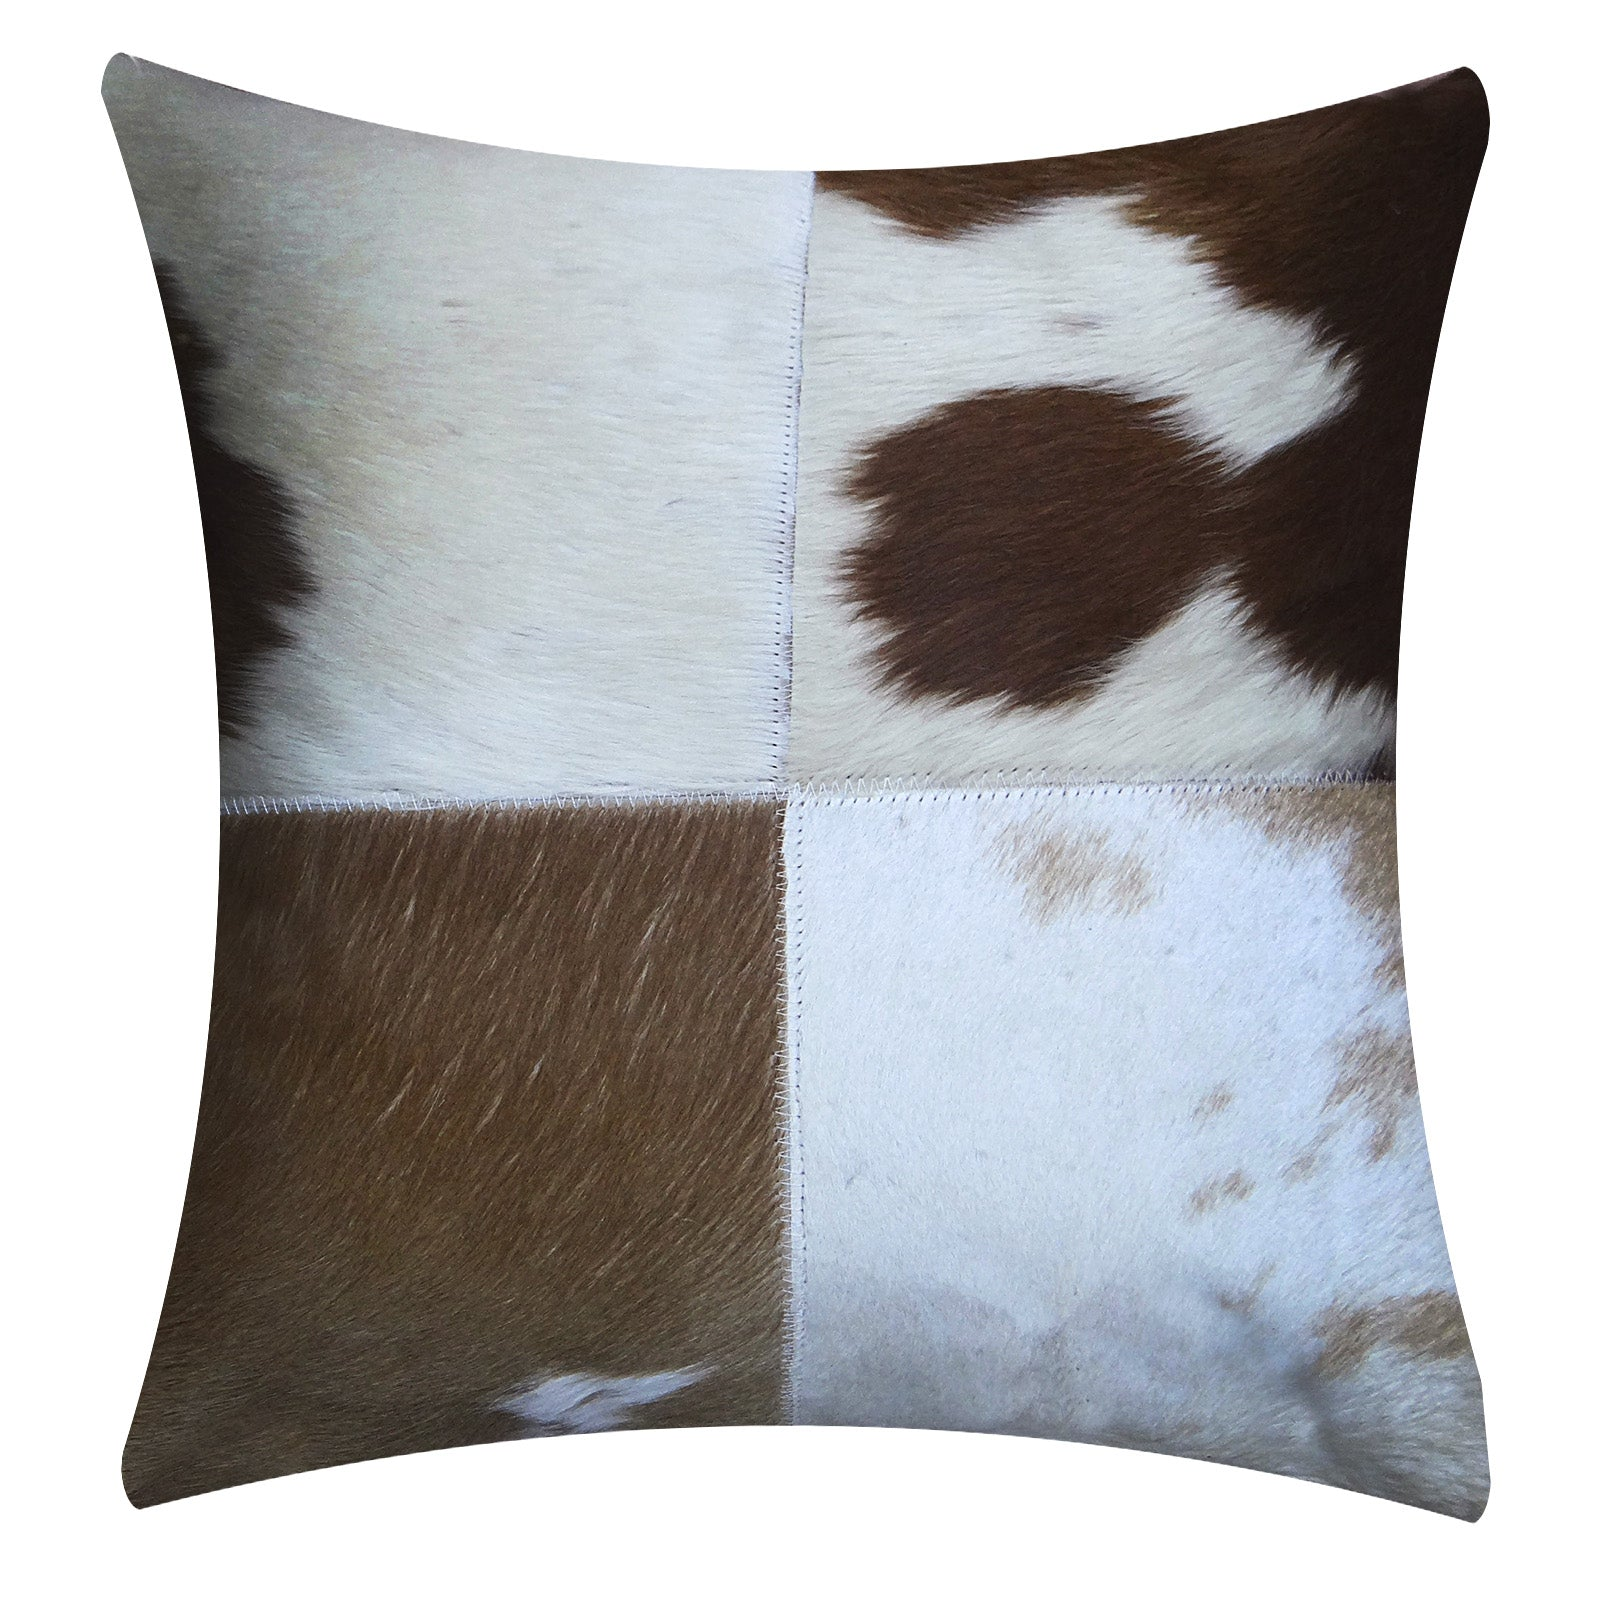 handmade Cowhide cushion cover COW-002